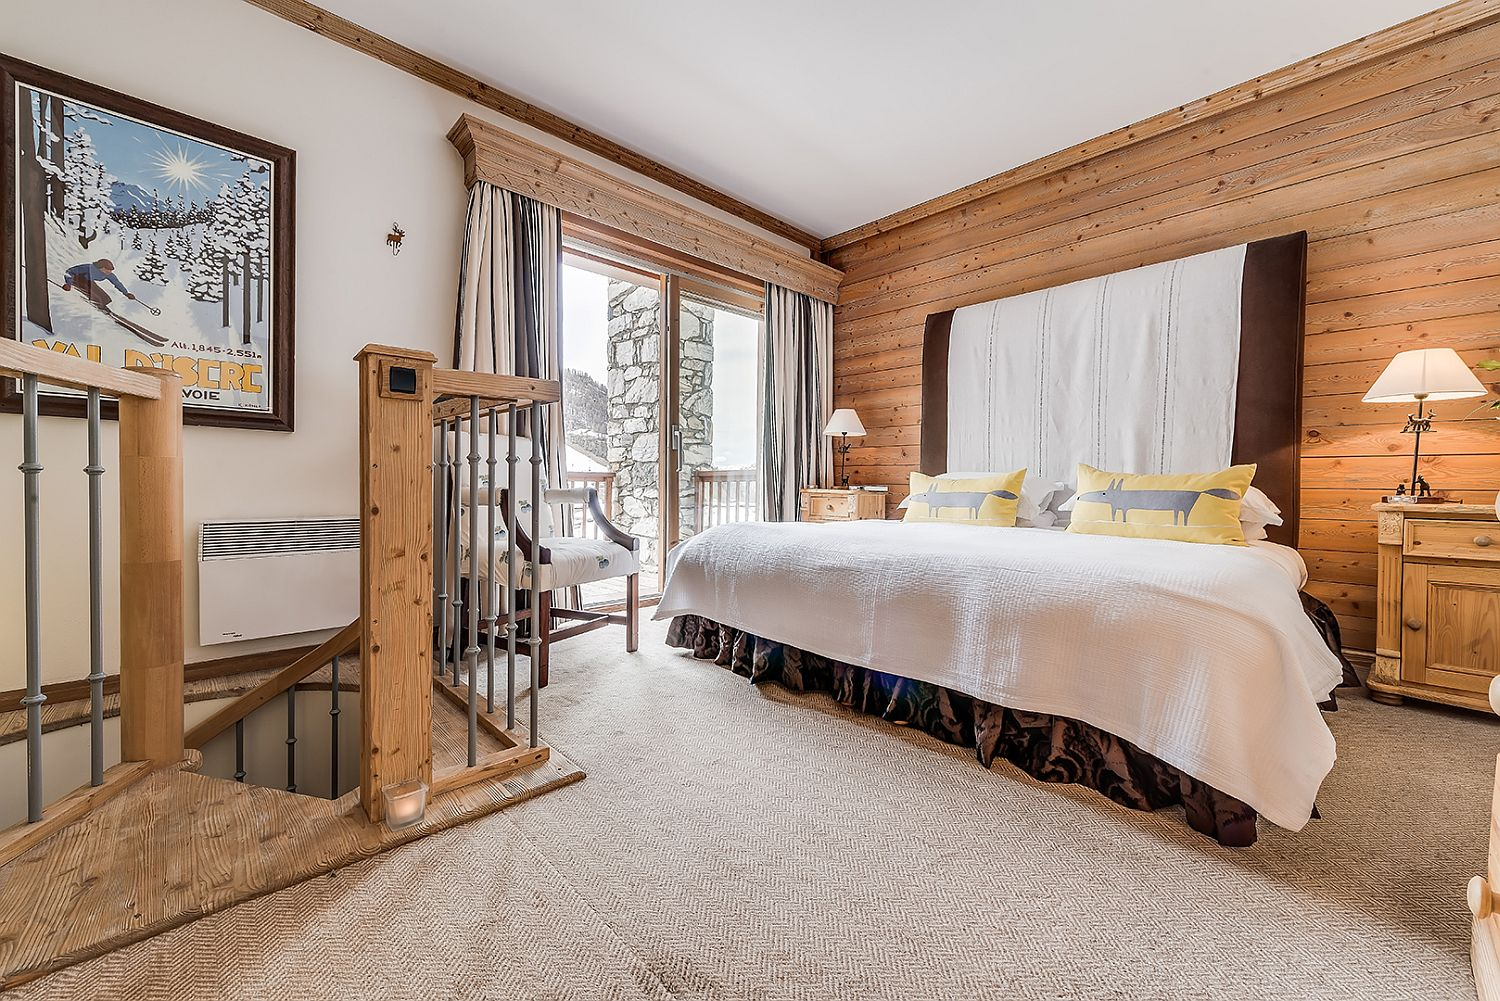 Bedroom-of-the-chalet-with-a-small-balcony